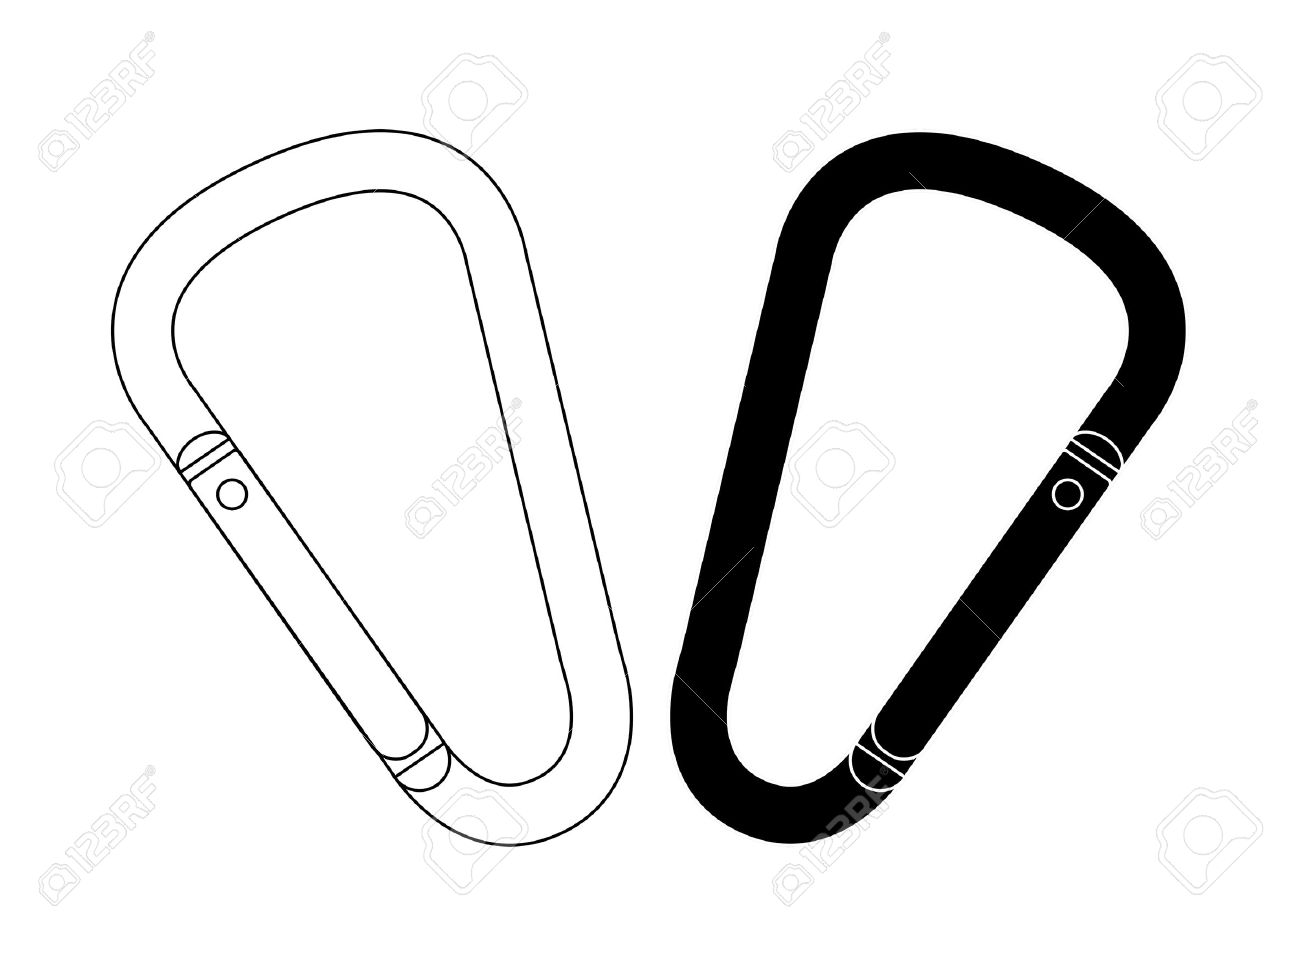 Set of safety hiking metal mountain climbing carabiners. Black and contour. Clip art vector